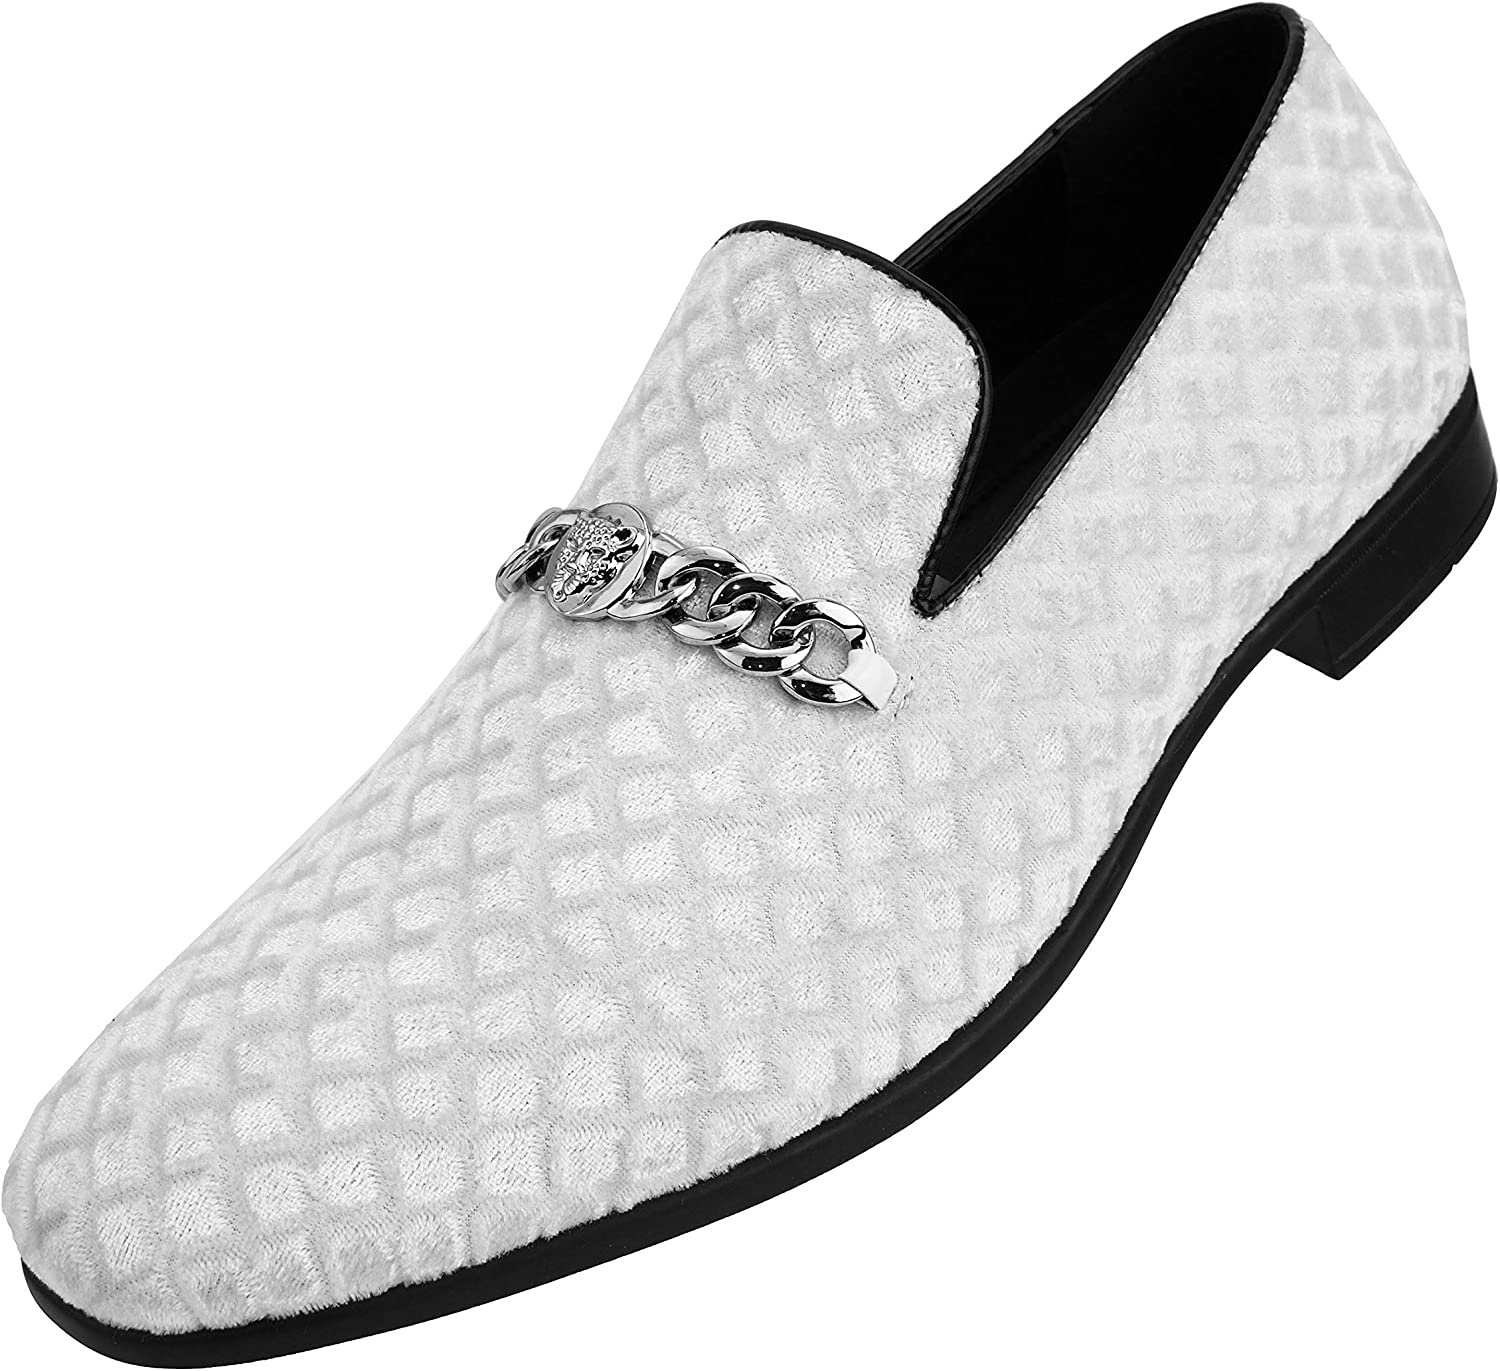 Amali The Original Mens Diamond Quilted Embossed Faux Velvet Slip On Loafer with Metal Chain Exotic Bit Dress Shoe Style Felix